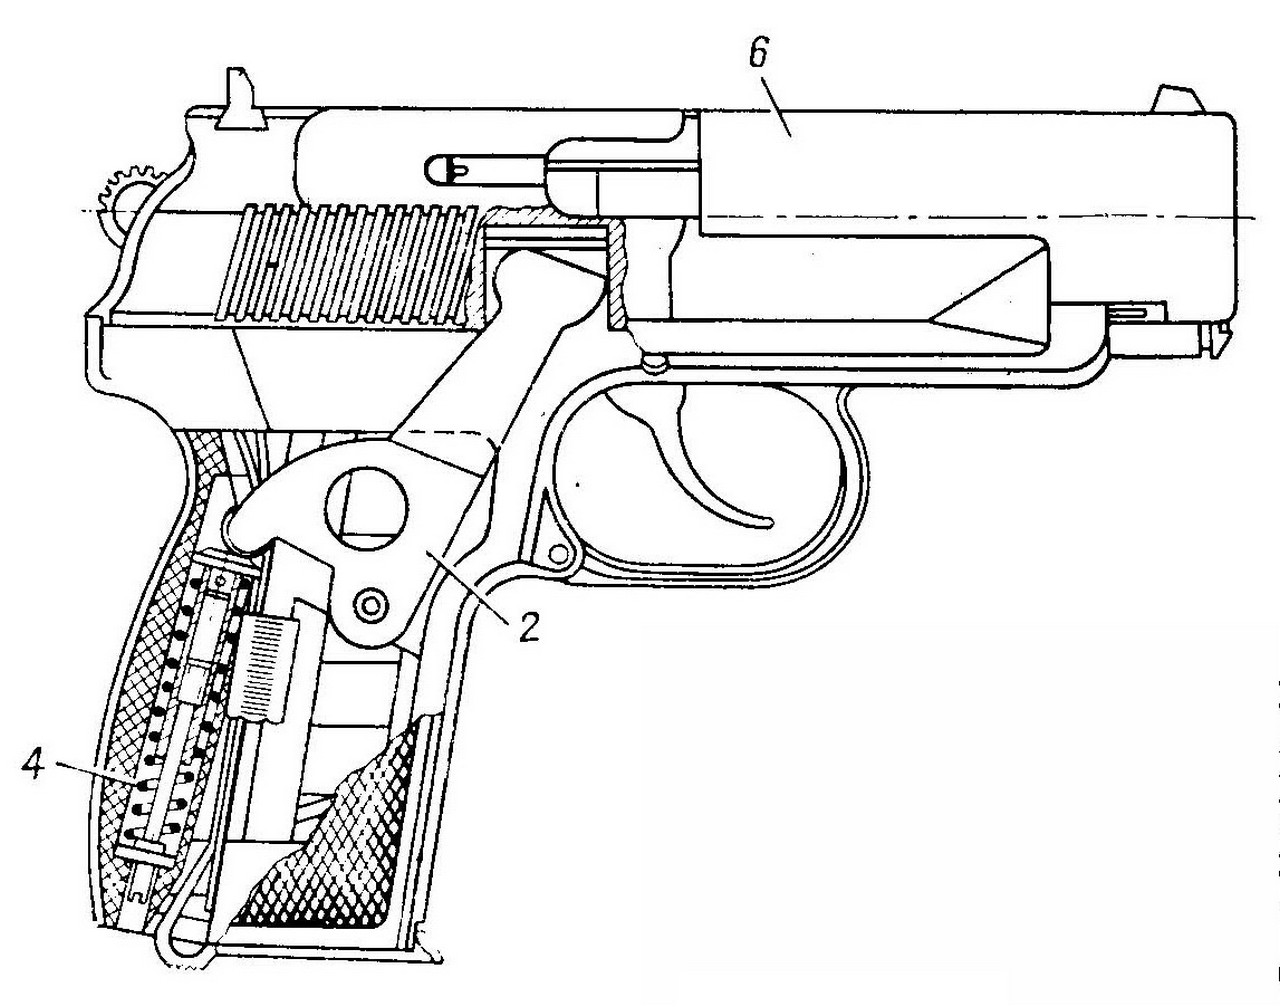 Drawn pistol 9mm Dated from Diagram 9mm –